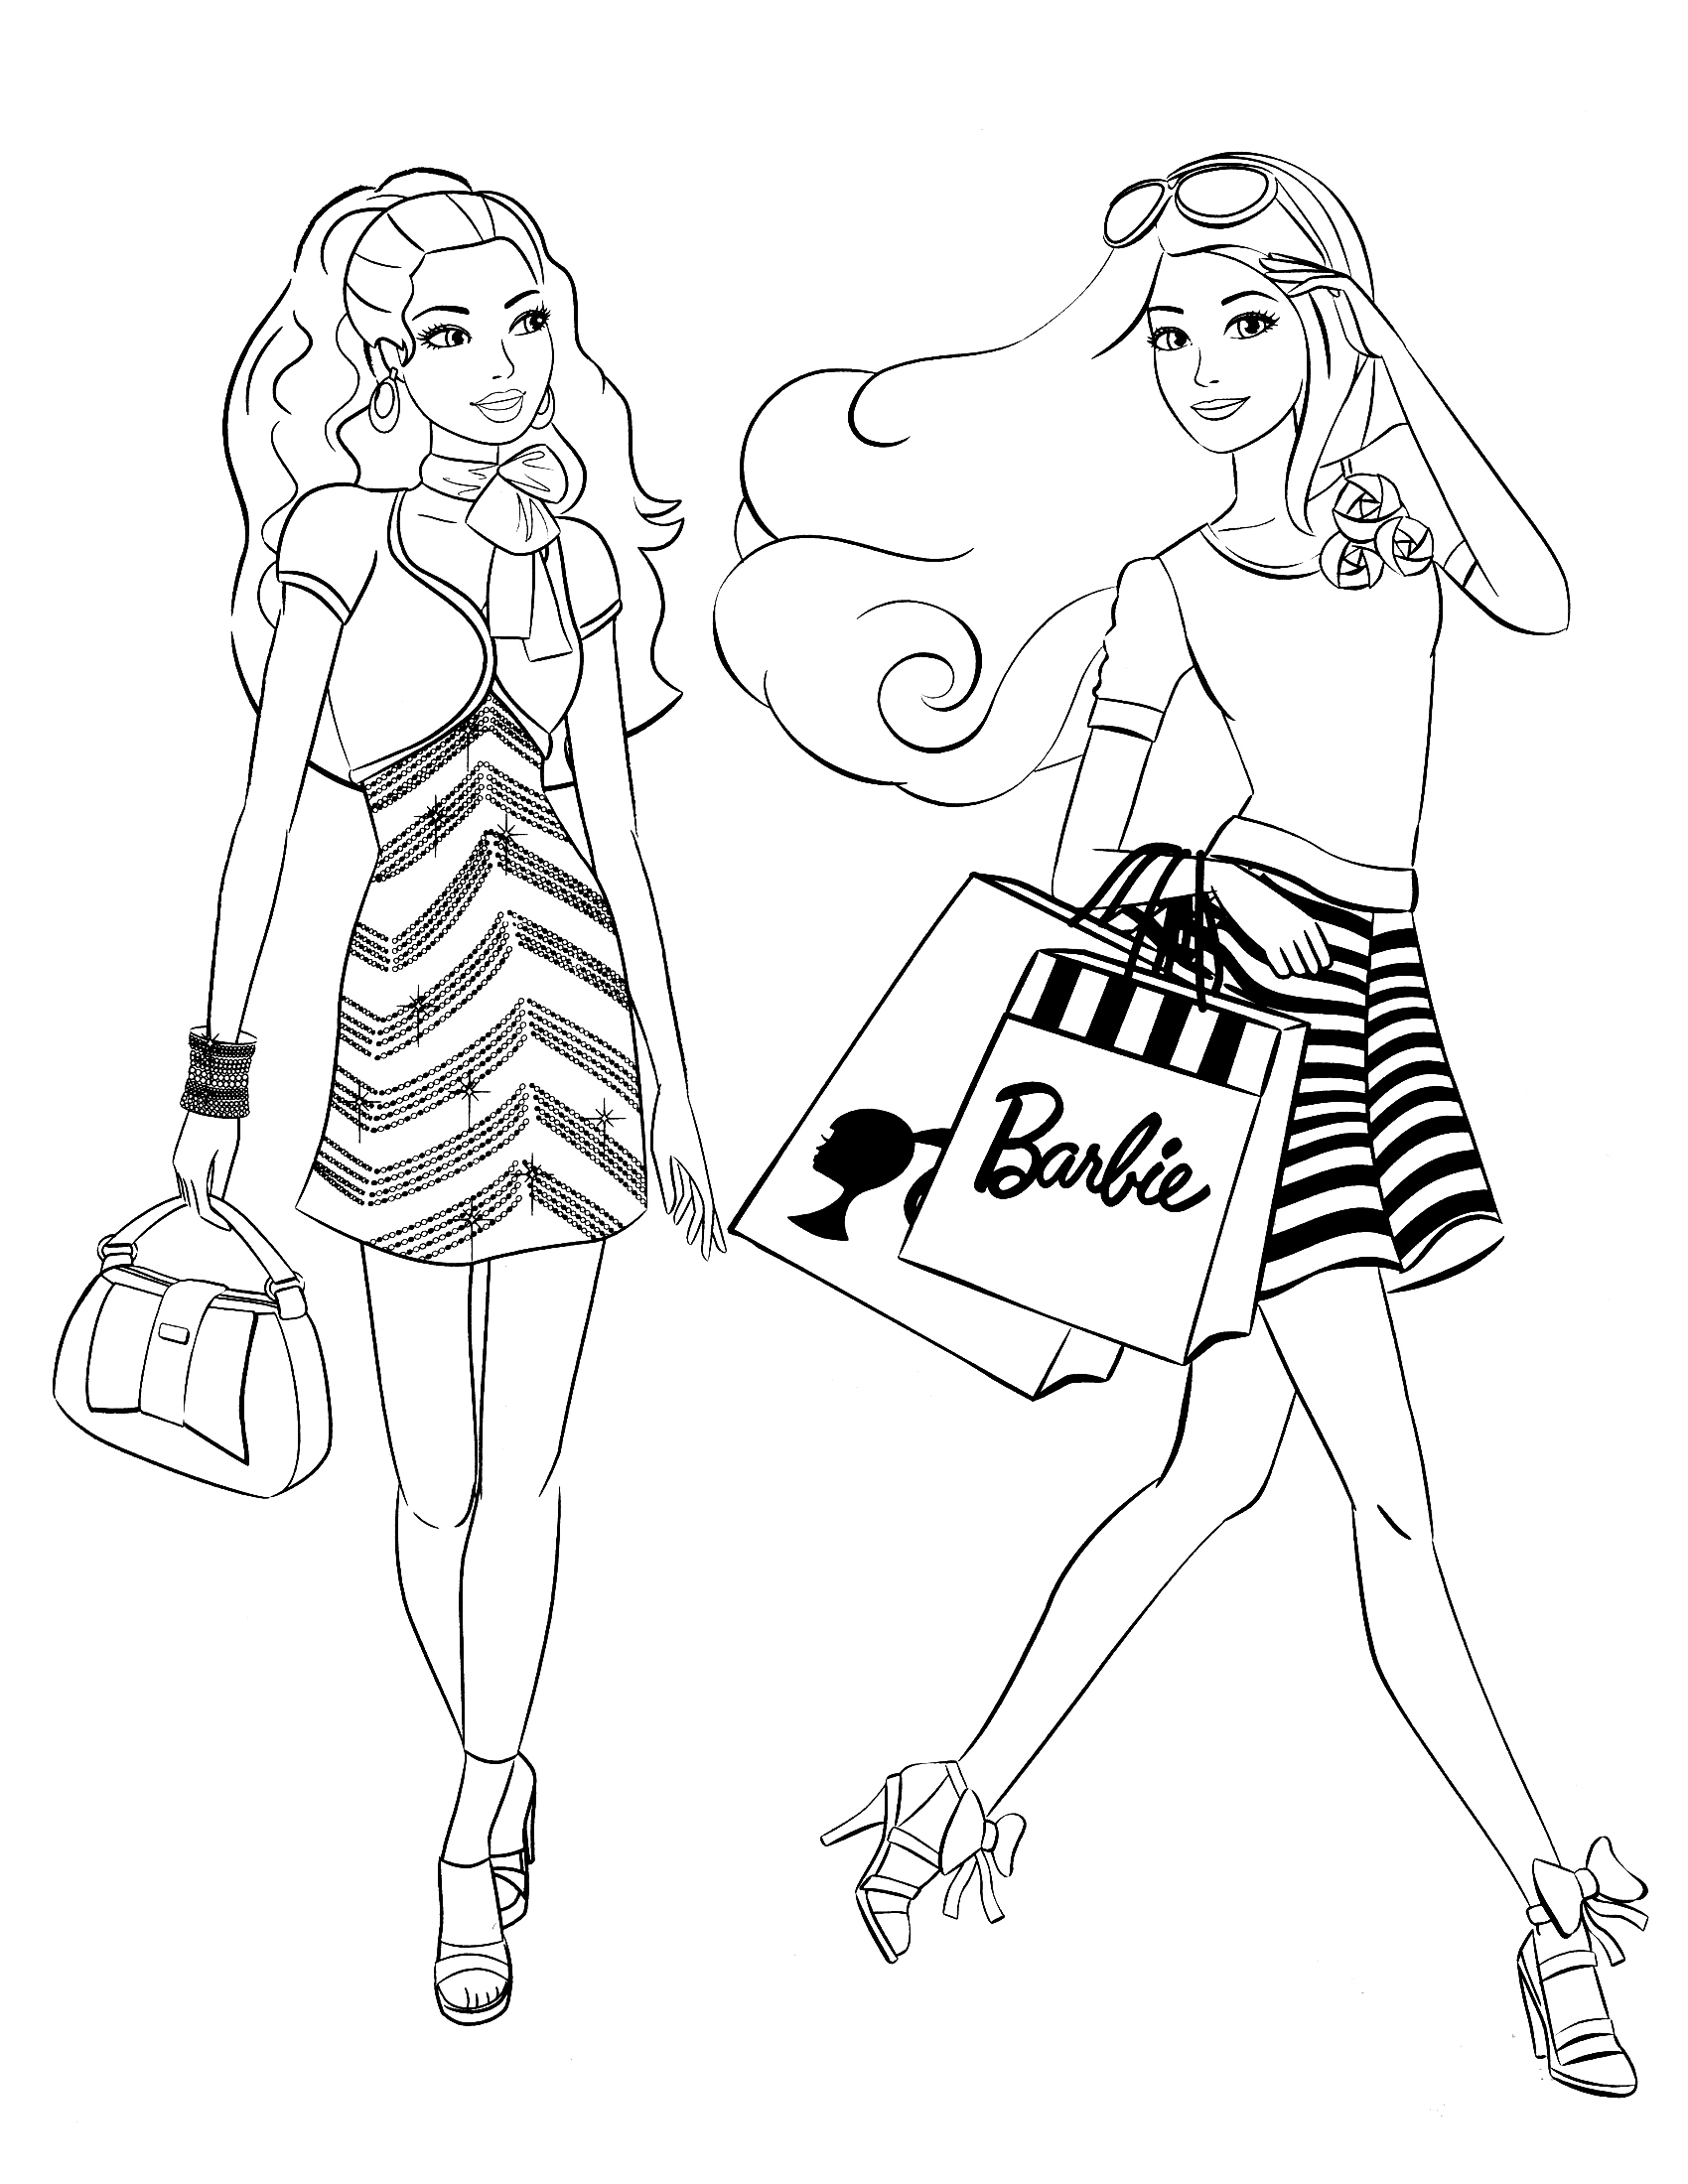 barbie painting pages get this printable image of barbie coloring pages t2o1m painting barbie pages